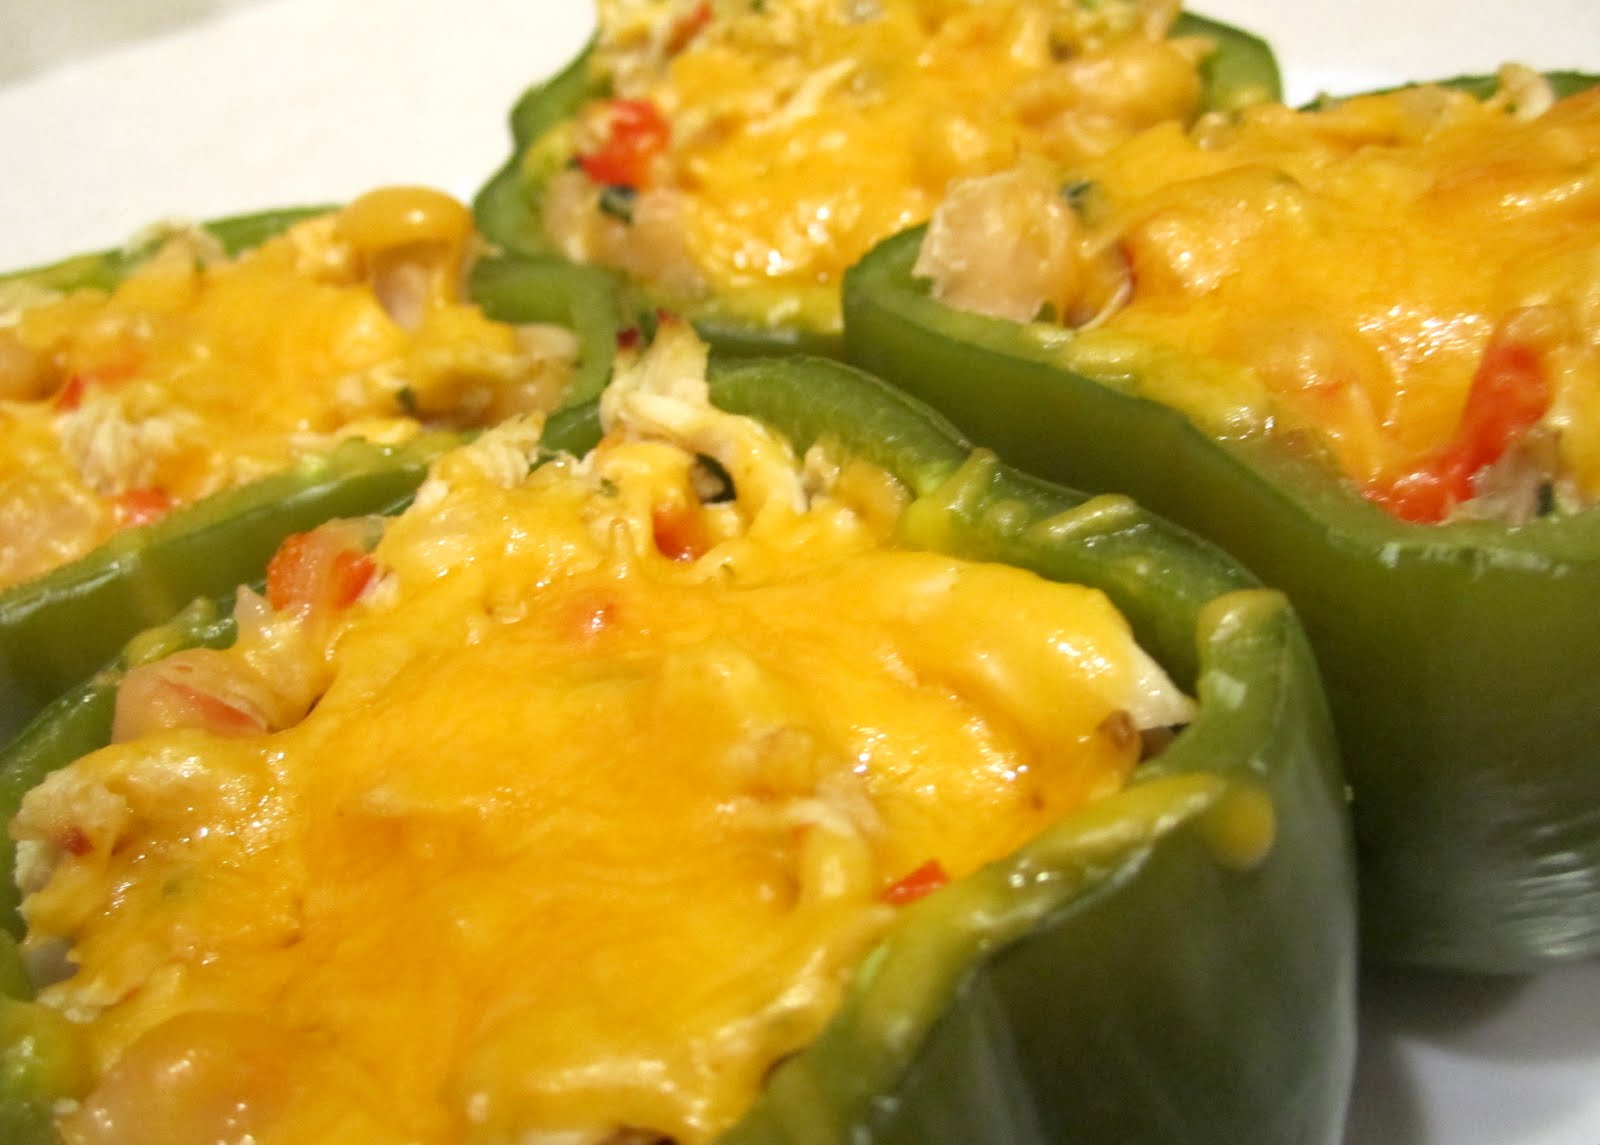 Gals and a Kitchen: Chicken and White Bean Stuffed Peppers